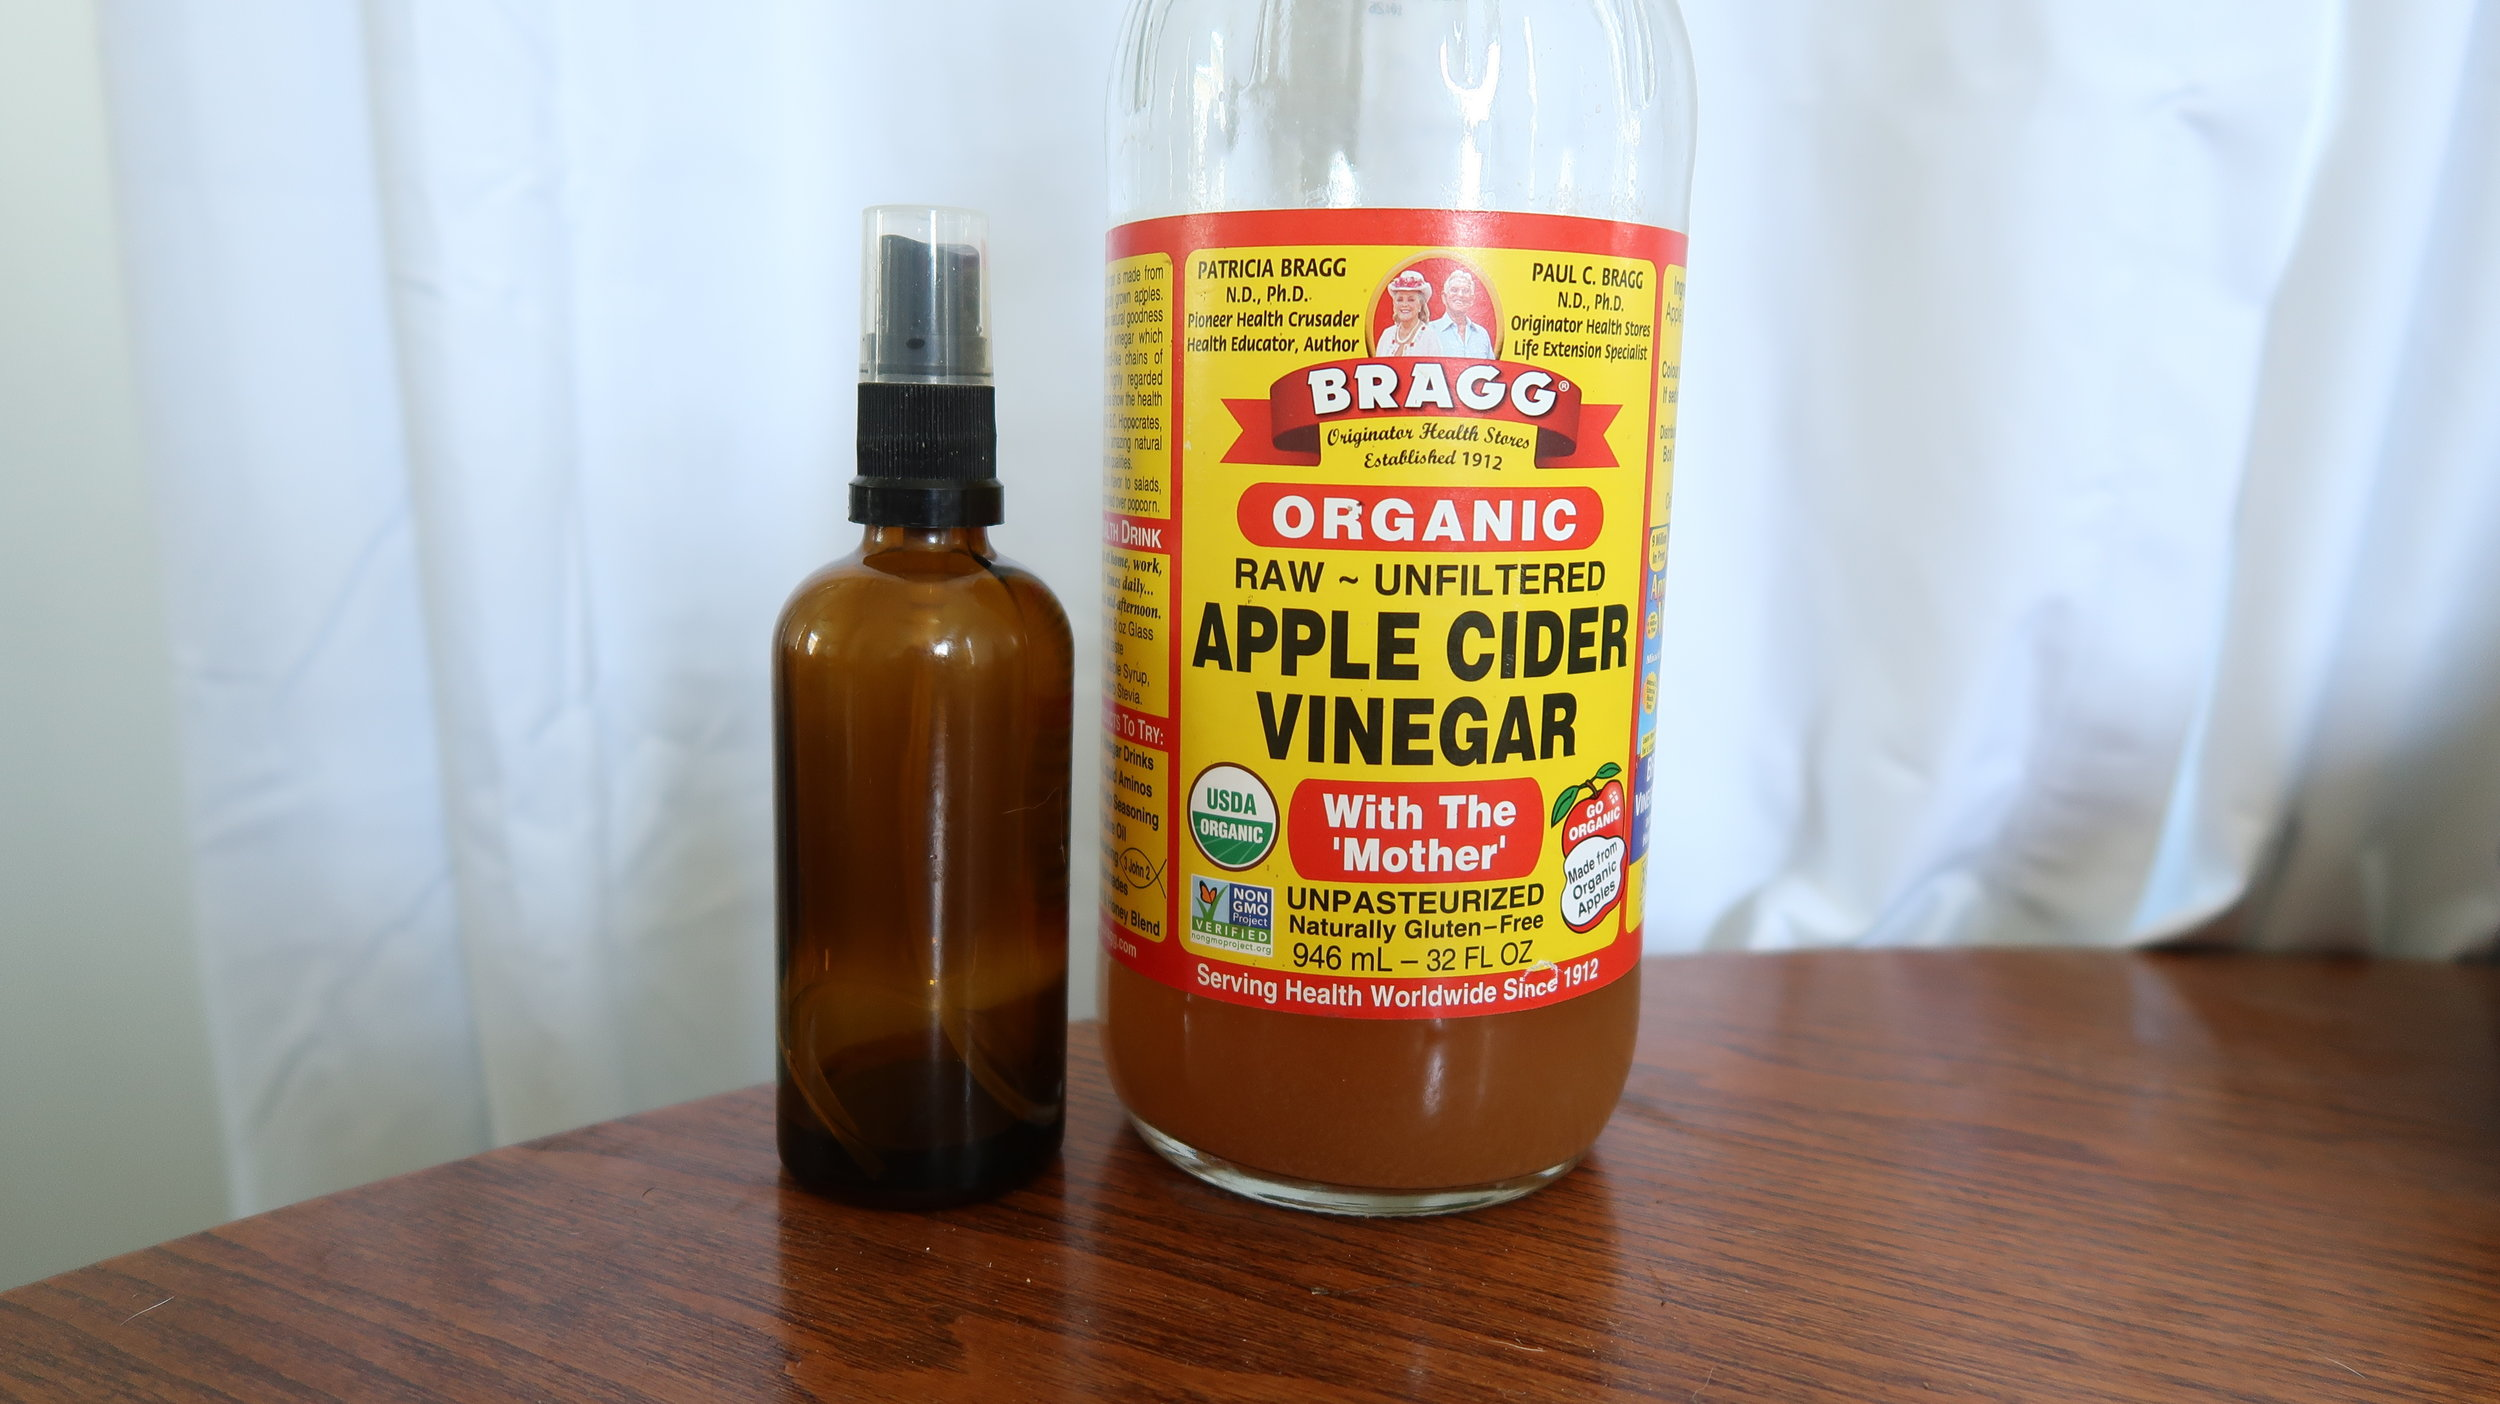 no poo apple cider vinegar